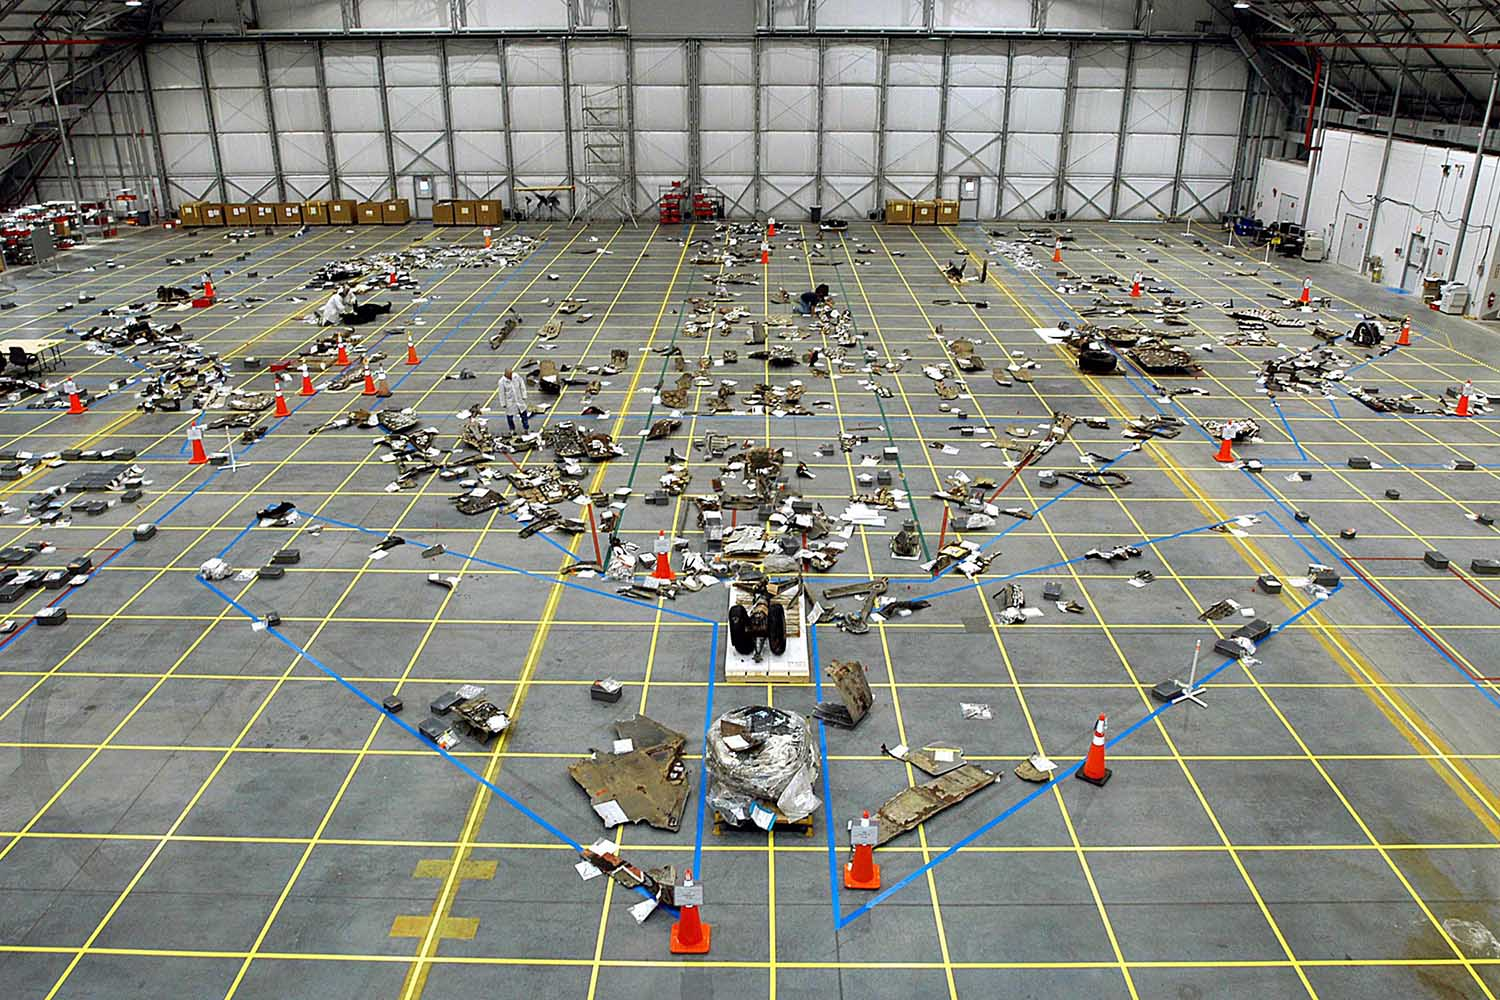 March 13, 2003. This photo provided by NASA on Feb. 1, 2013, the 10th anniversary since the orbiter broke apart in the skies over Texas, shows the RLV Hangar where the floor grid is marked with a growing number of pieces of the Columbia Space Shuttle debris.